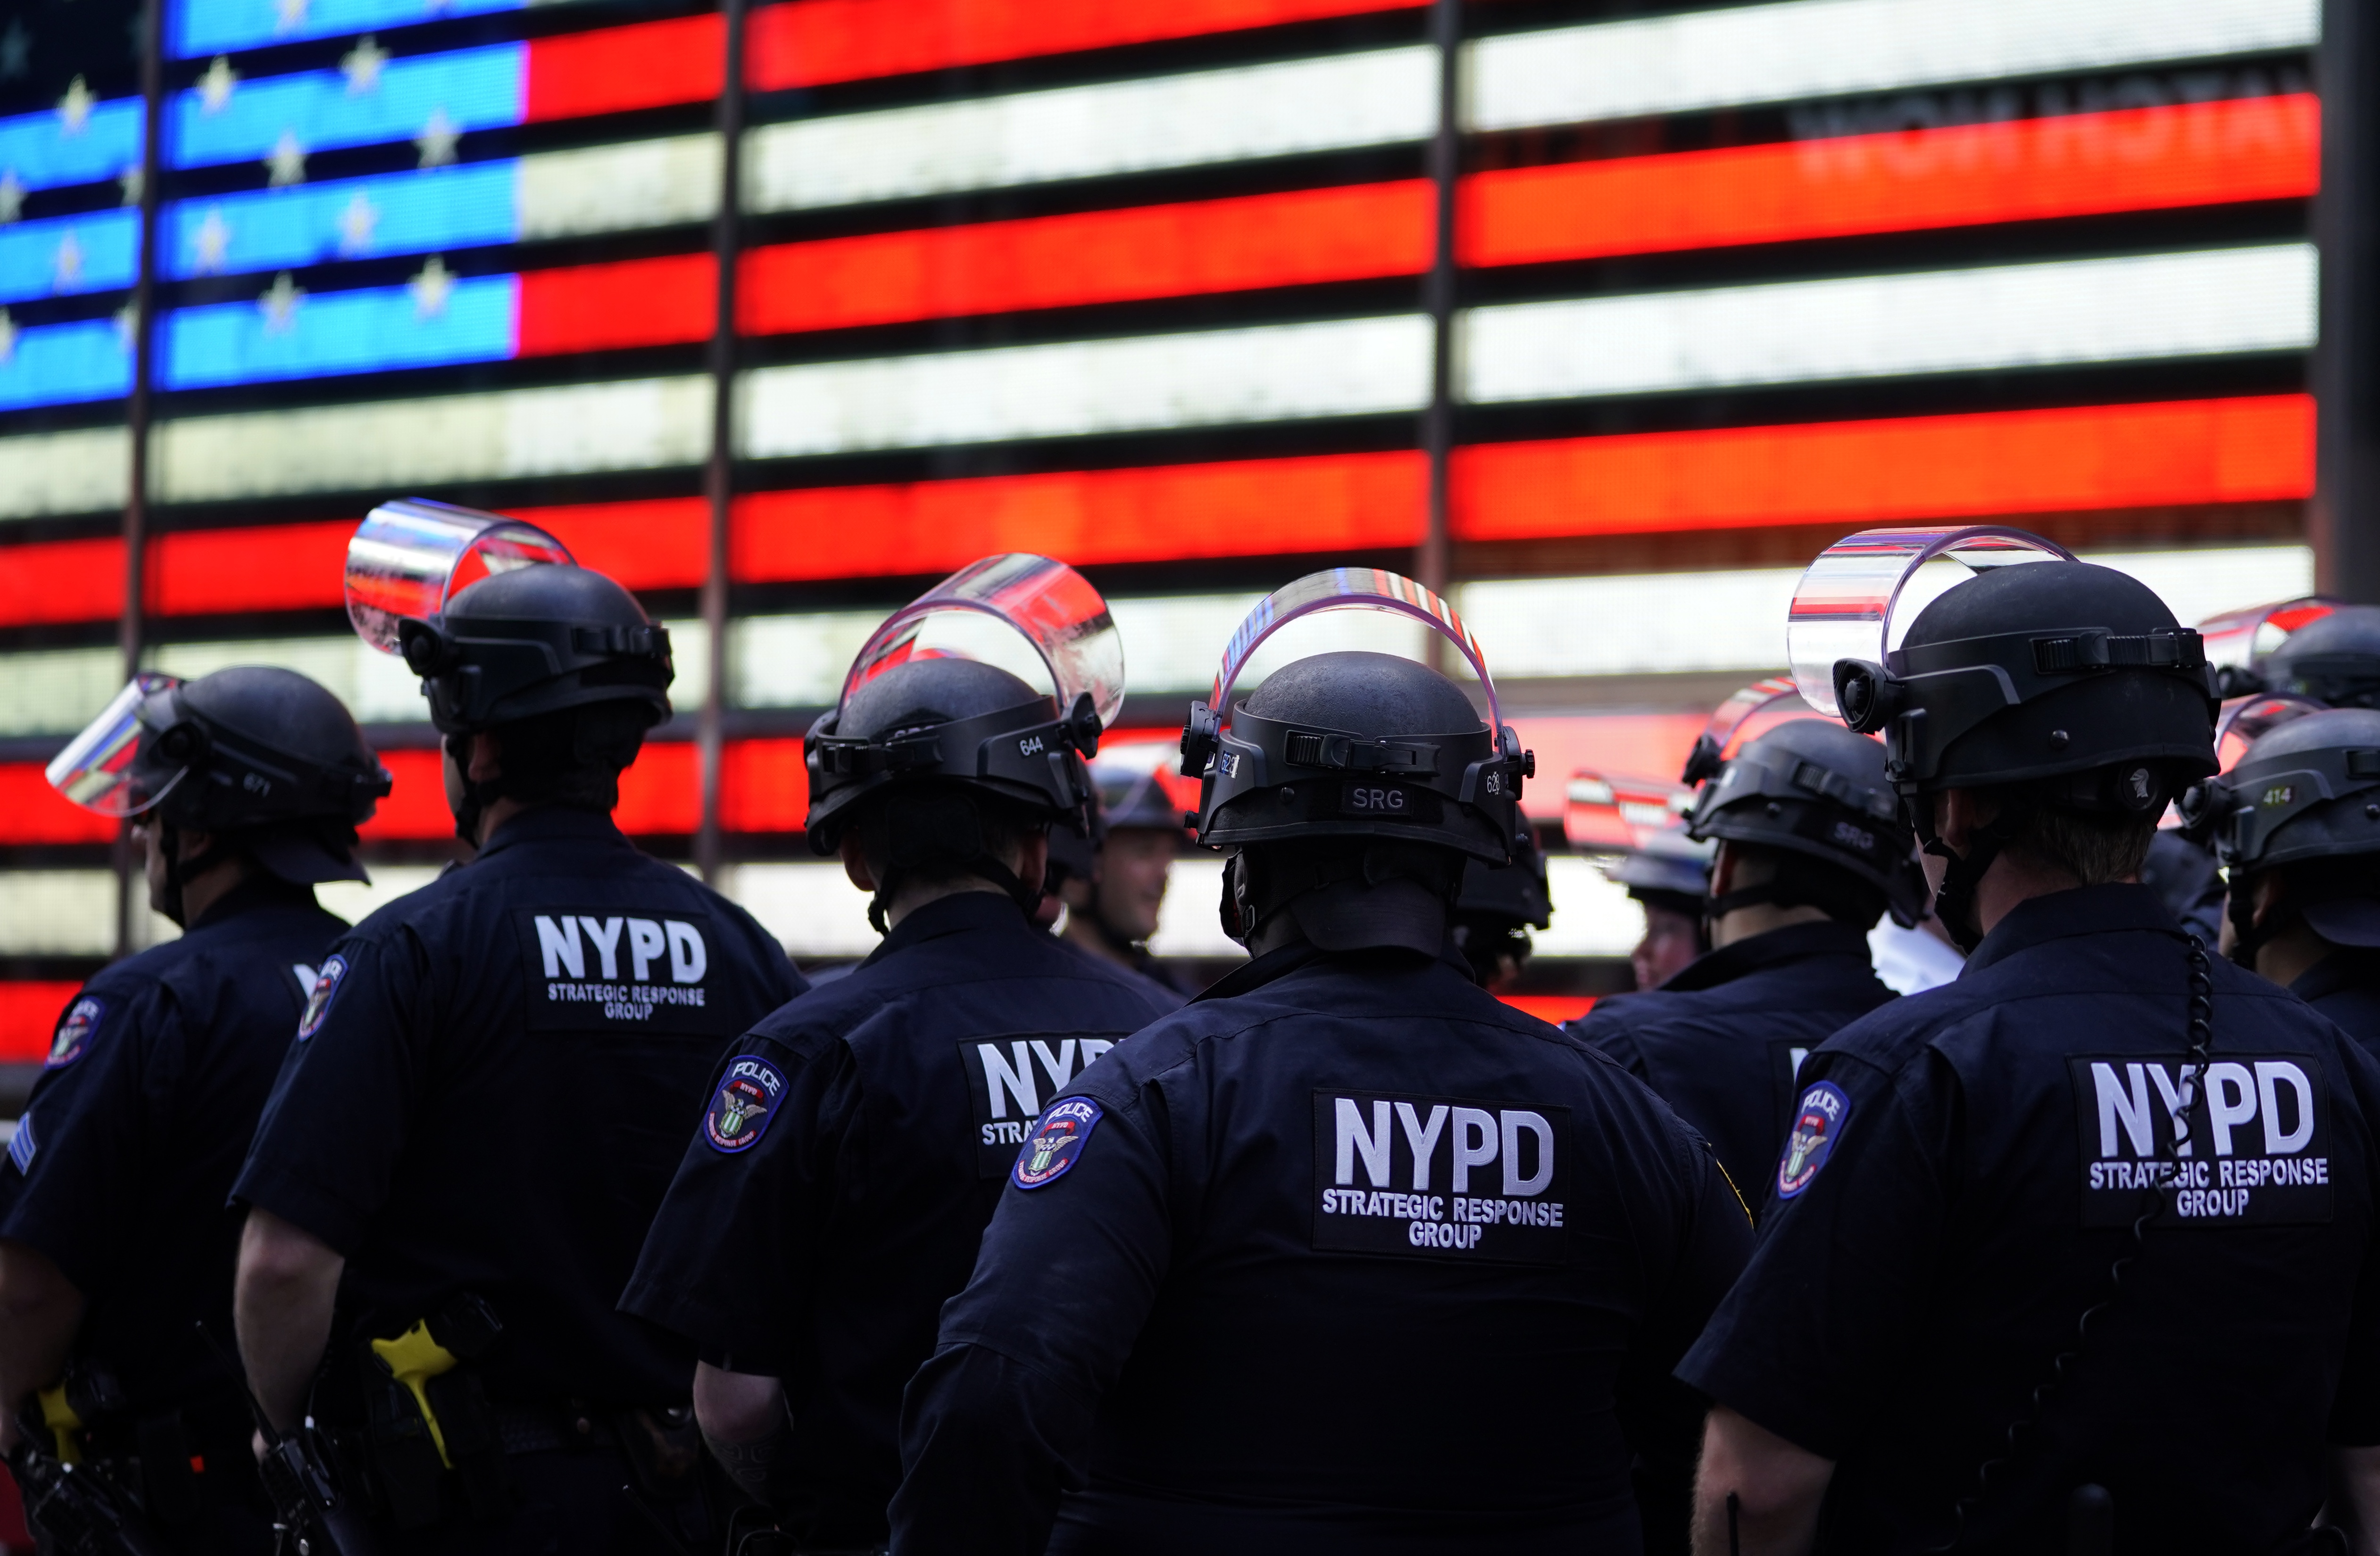 NYPD police officers in Times Square. (Photo by TIMOTHY A. CLARY/AFP via Getty Images)